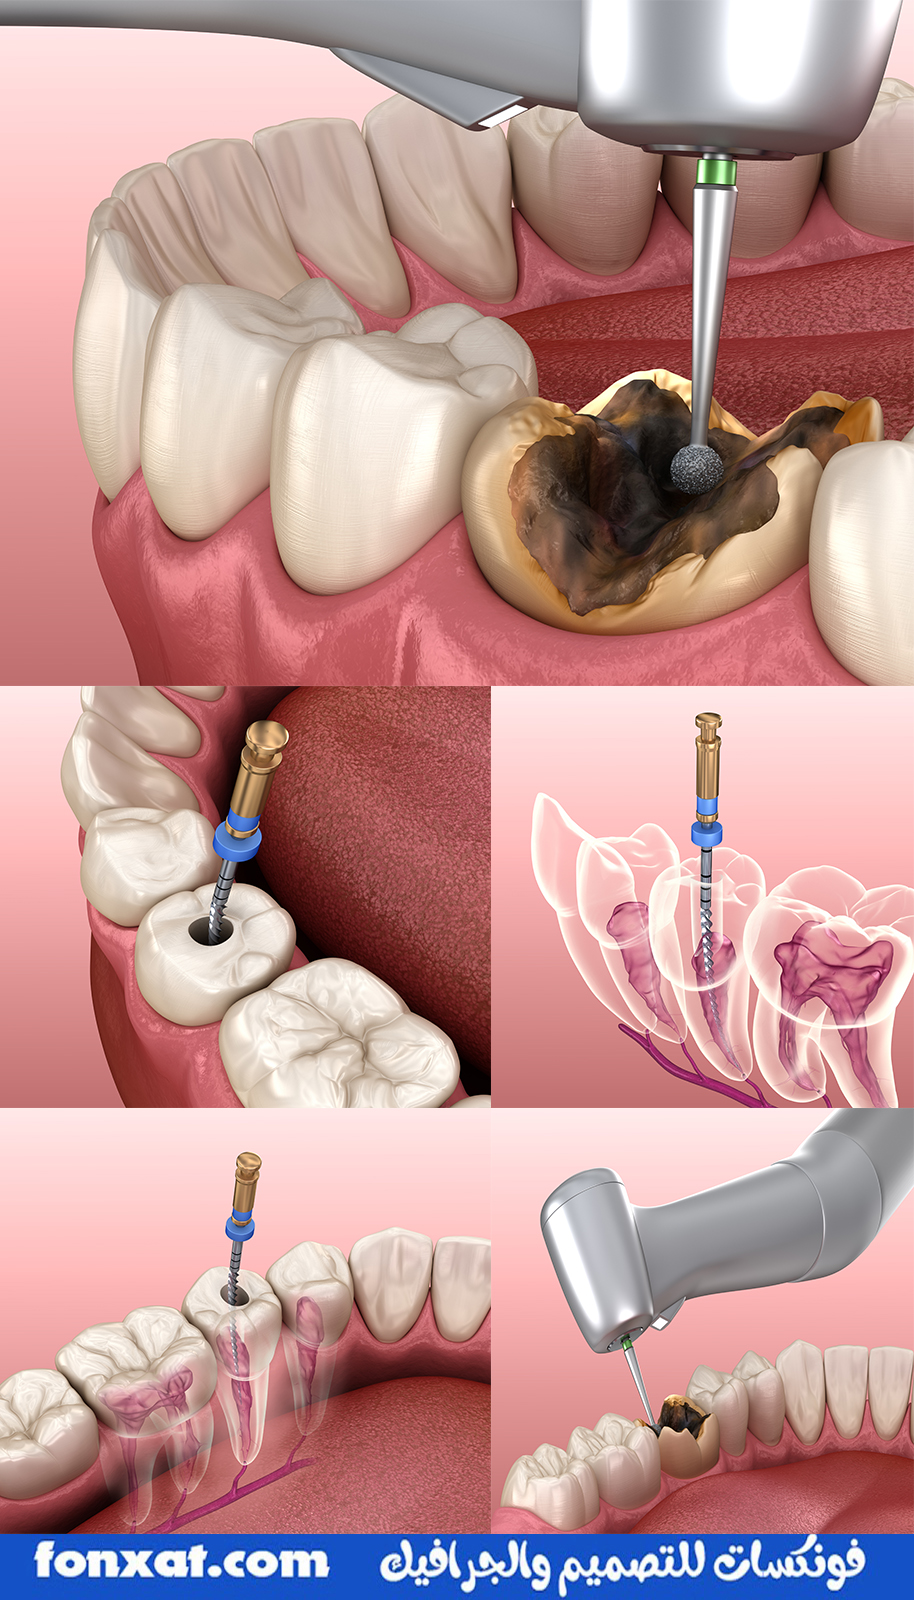 A set of 9 photos of the highest quality in the field of dentistry and dental clinics, used with professional designs